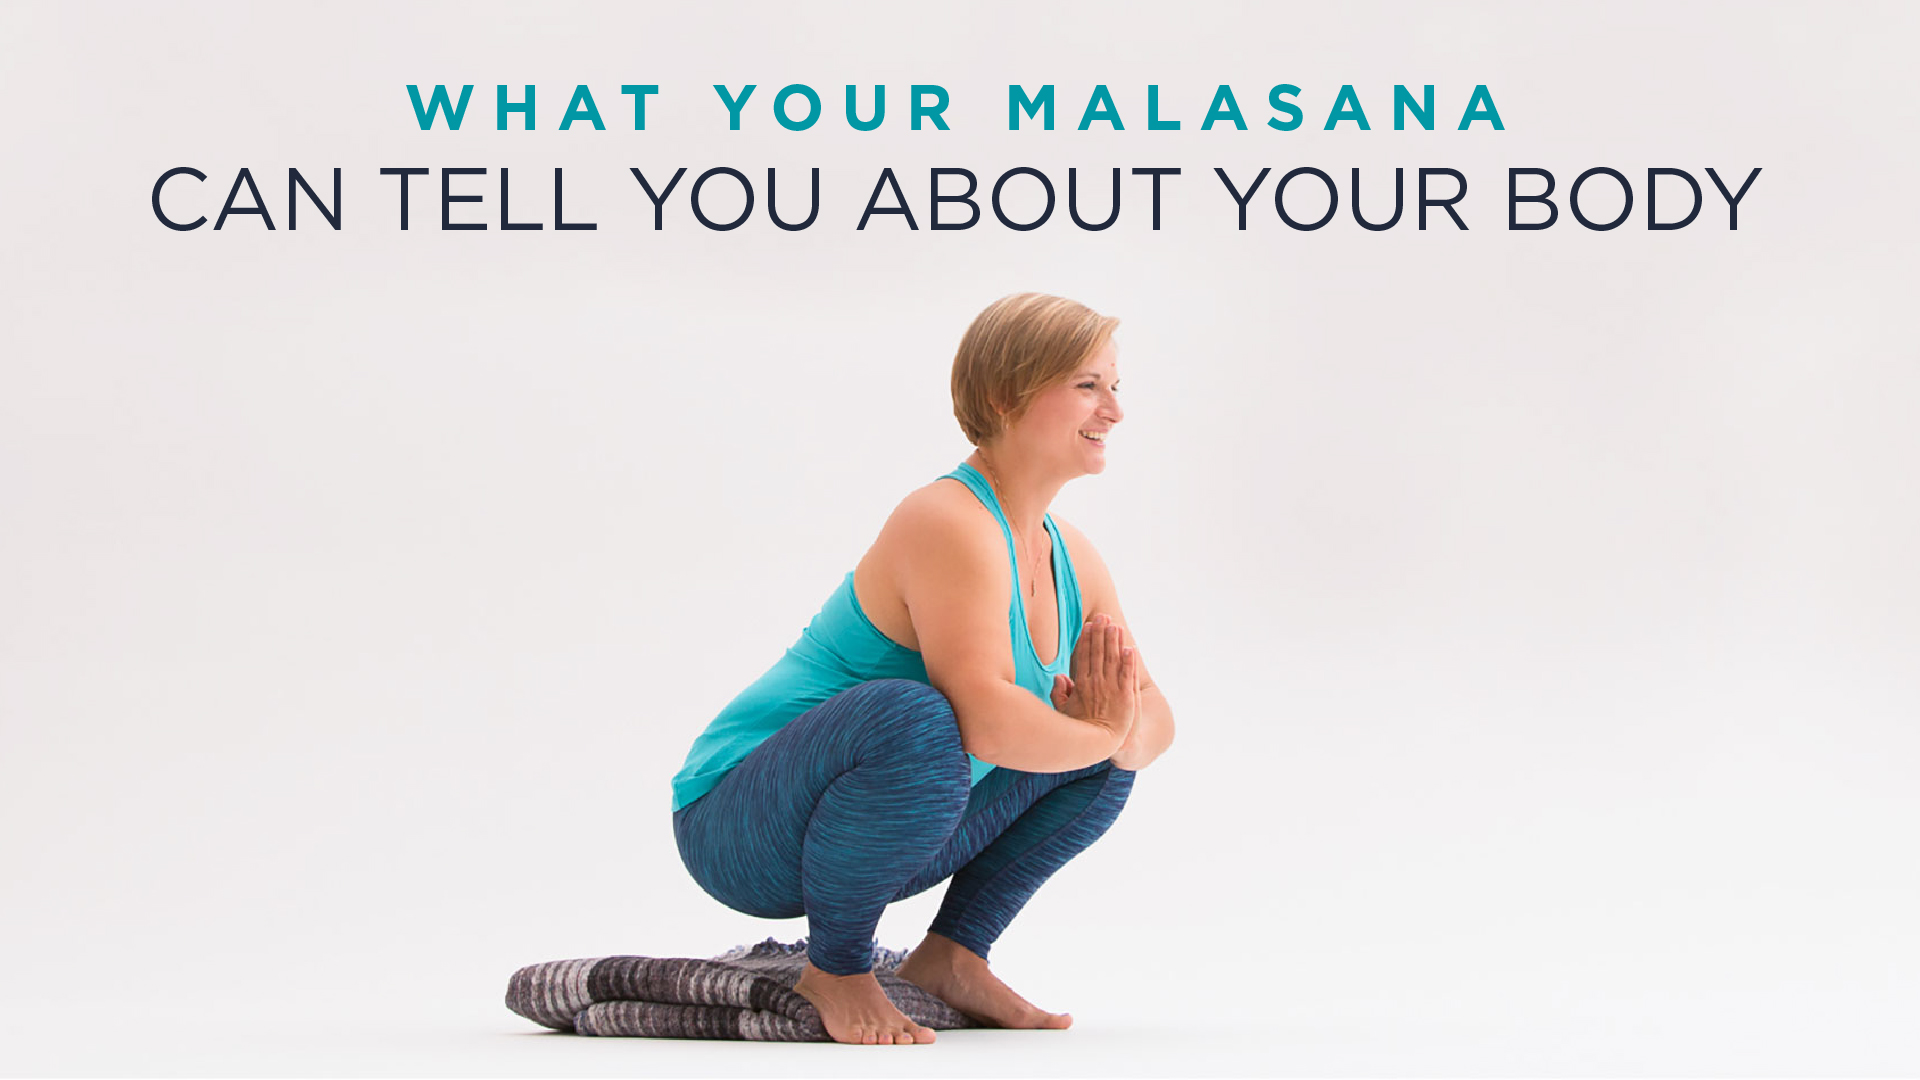 What Your Malasana (Squat) Can Tell You About Your Body